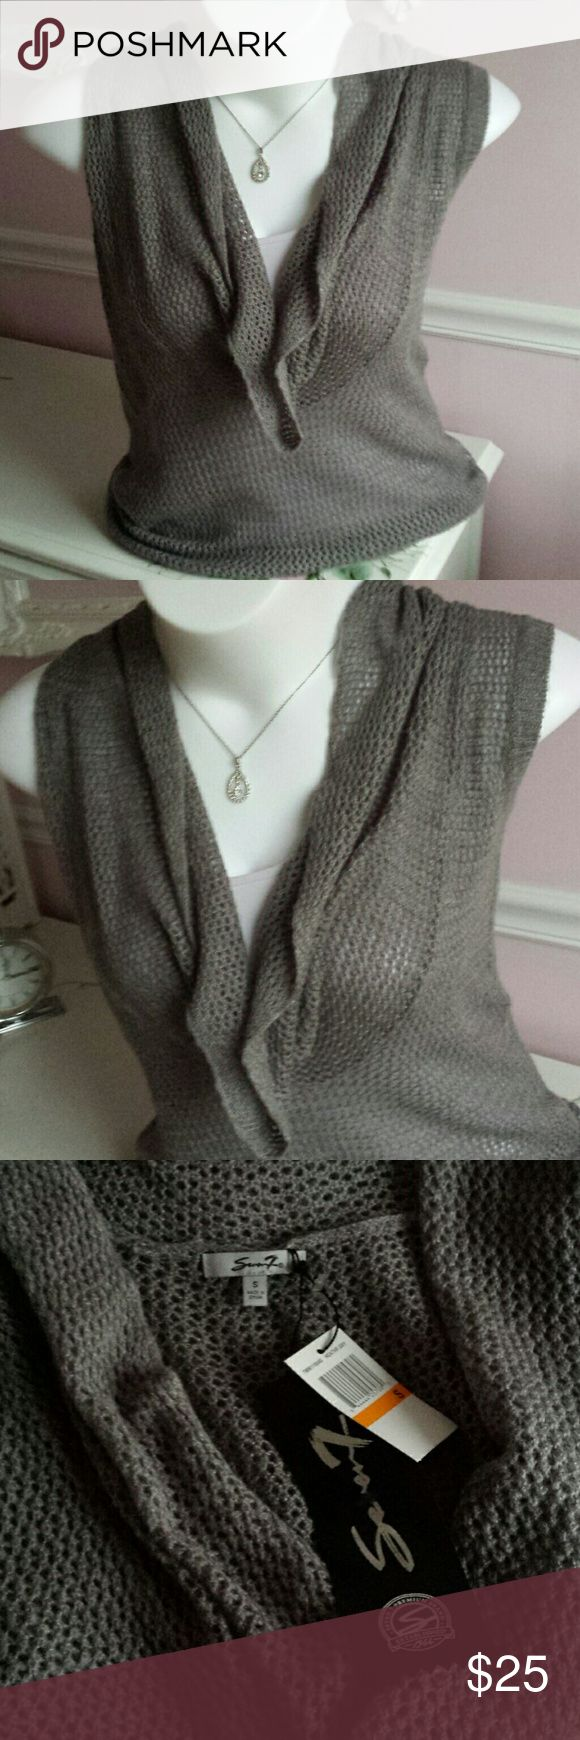 Seven7 gray sleeveless sweater Gray sleeveless sweater with draped cowl neck by SEVEN7. Longer length, slightly looser fit. Brand new with tags. Seven7 Sweaters Cowl & Turtlenecks